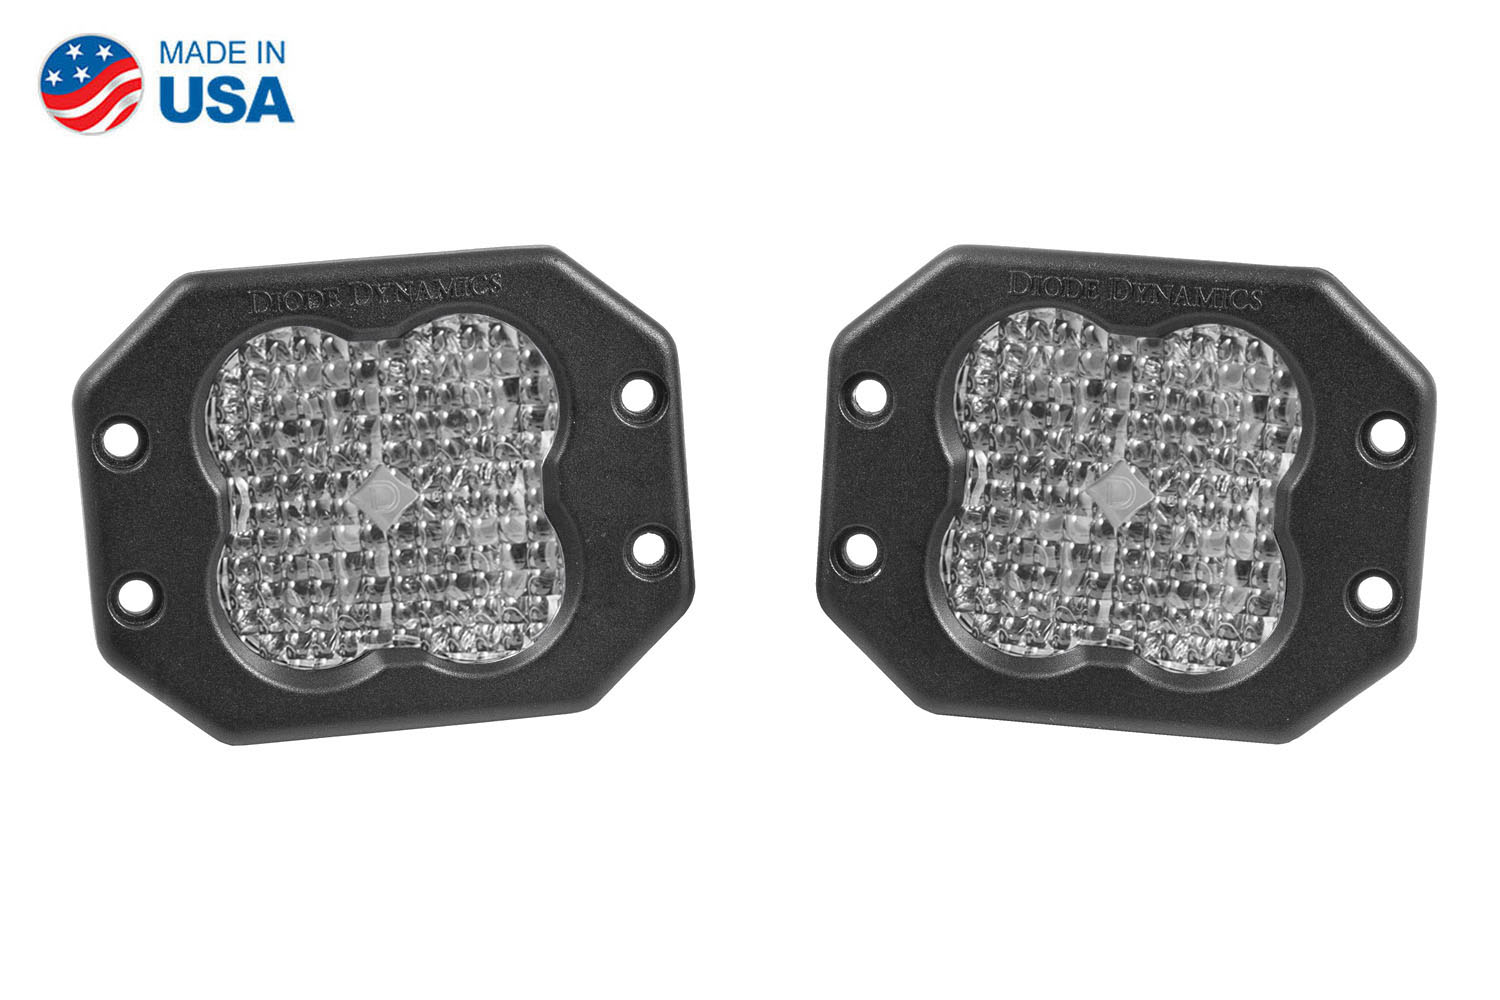 Diode Dynamics Worklight SS3 Pro White Flood Flush (pair)